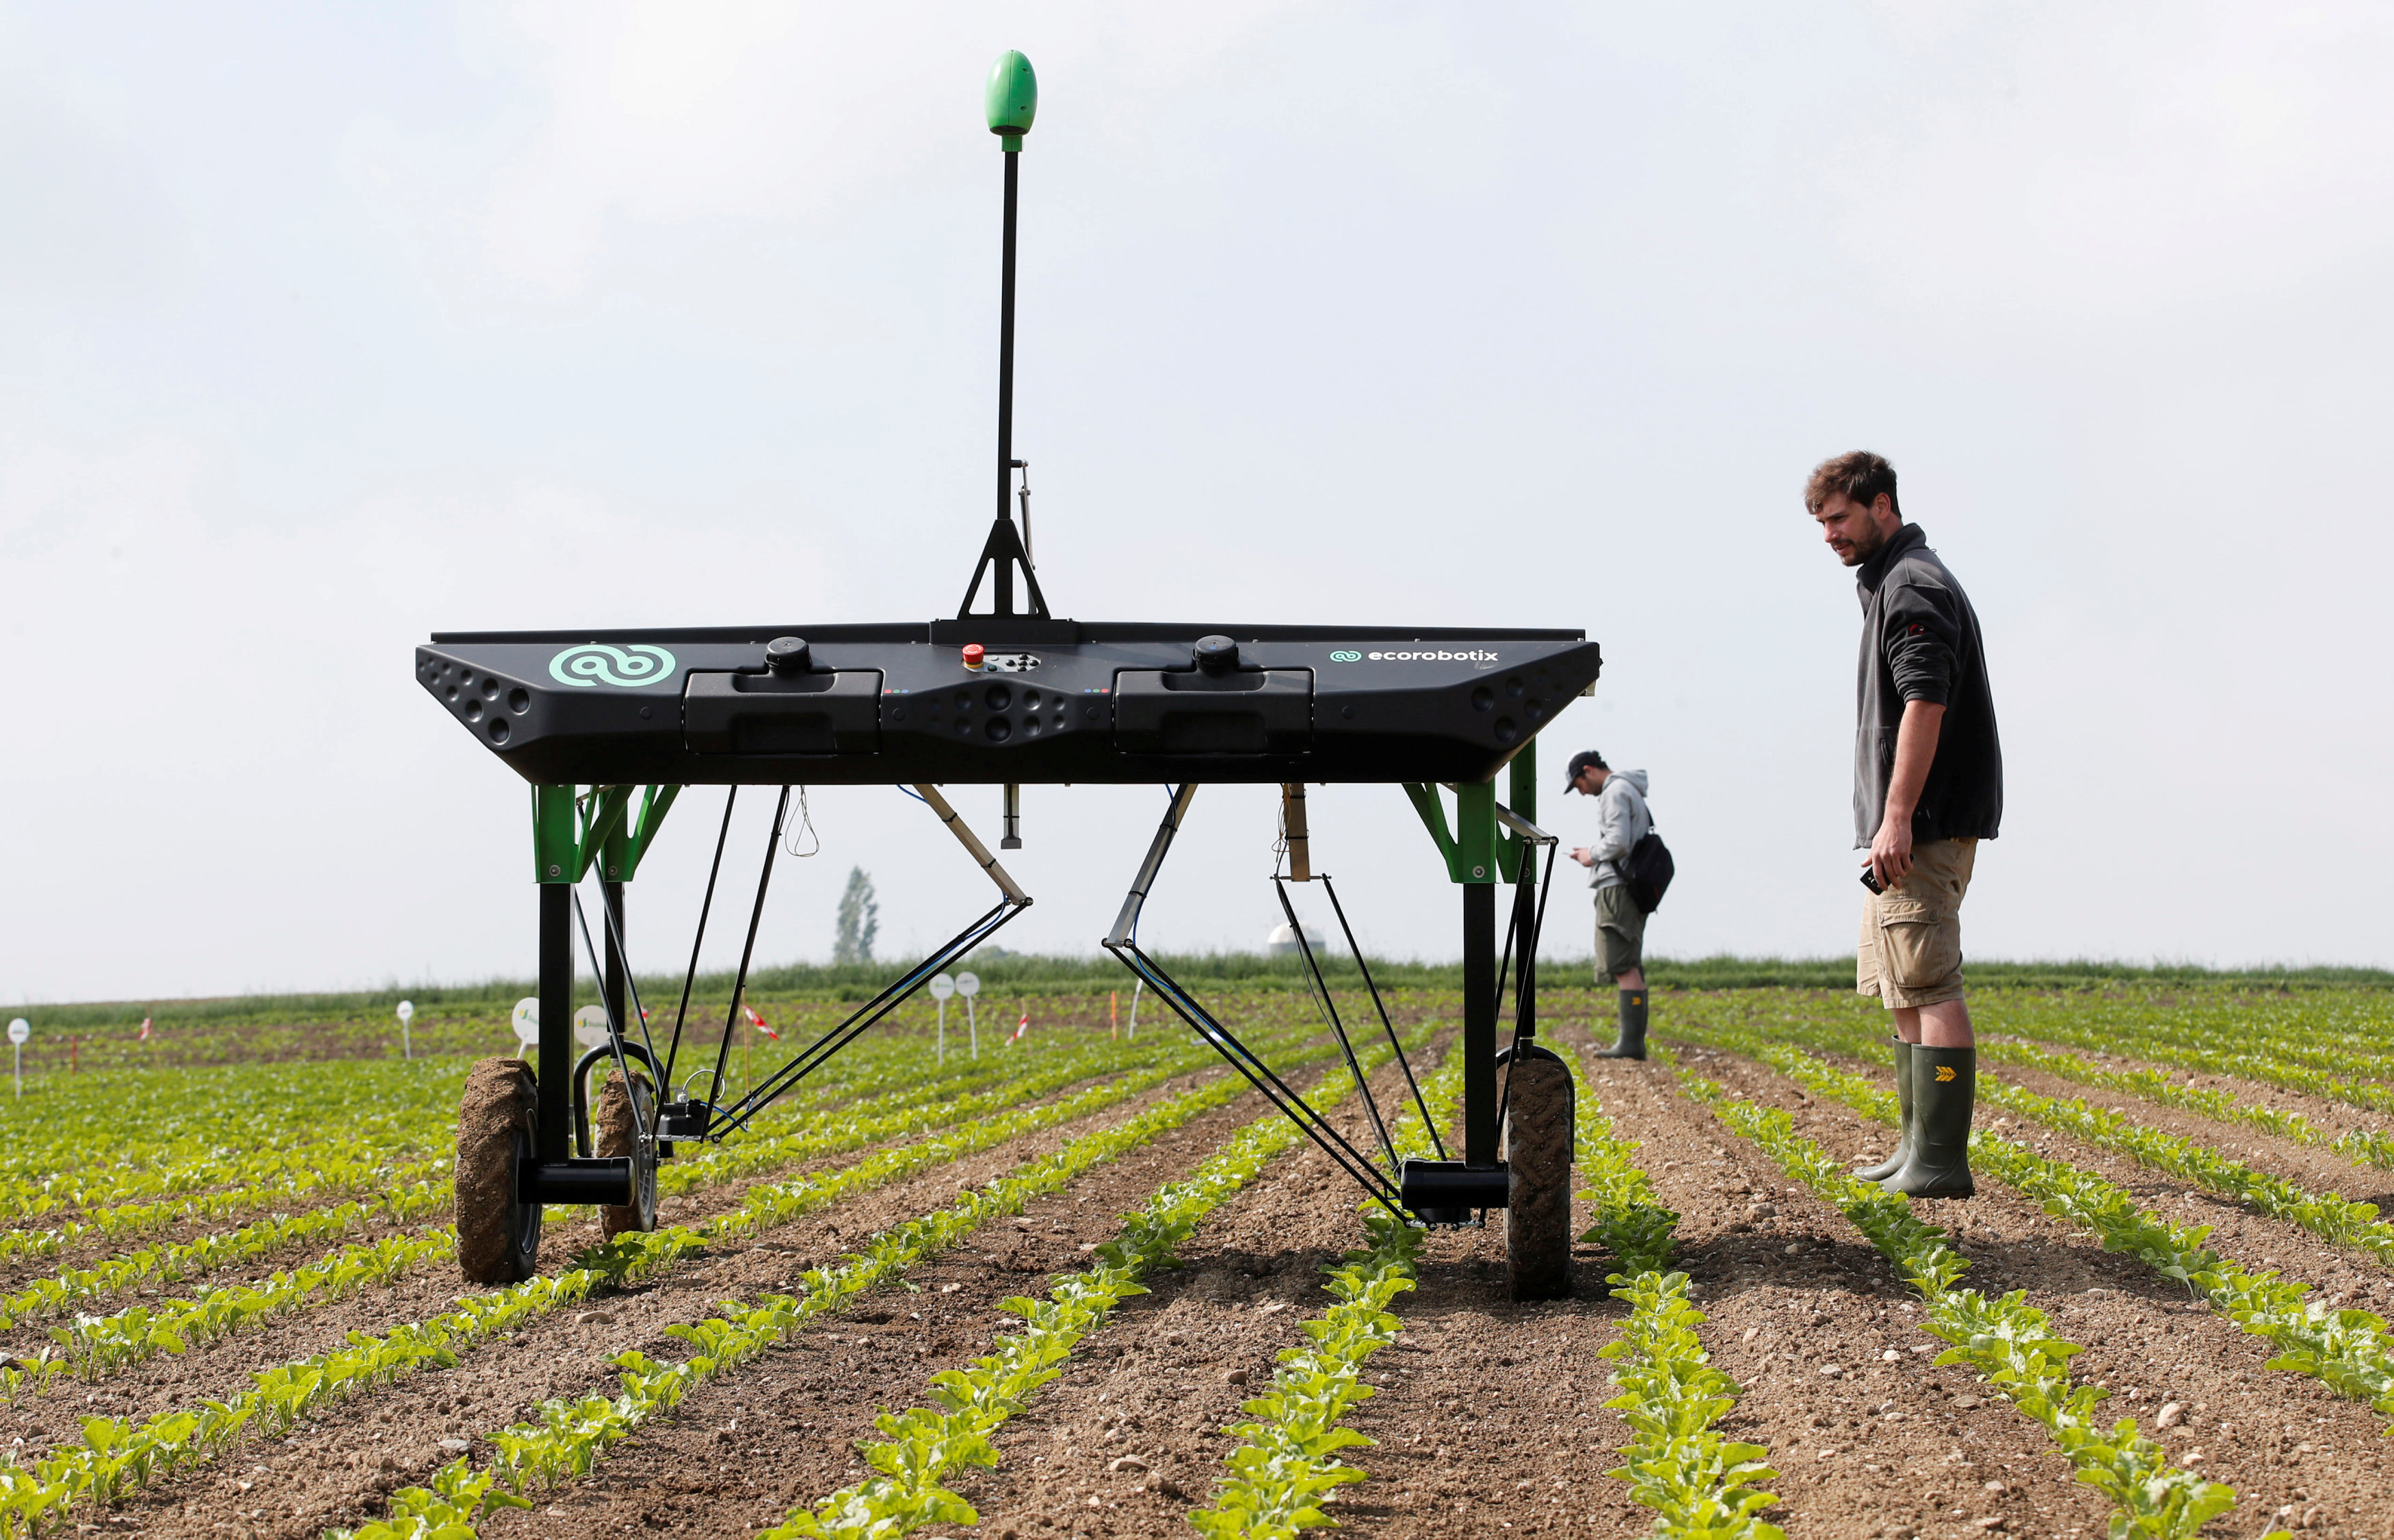 The prototype of an autonomous weeding machine by Swiss start-up ecoRobotix is pictured during tests on a sugar beet field near Bavois, Switzerland May 18, 2018. REUTERS/Denis Balibouse